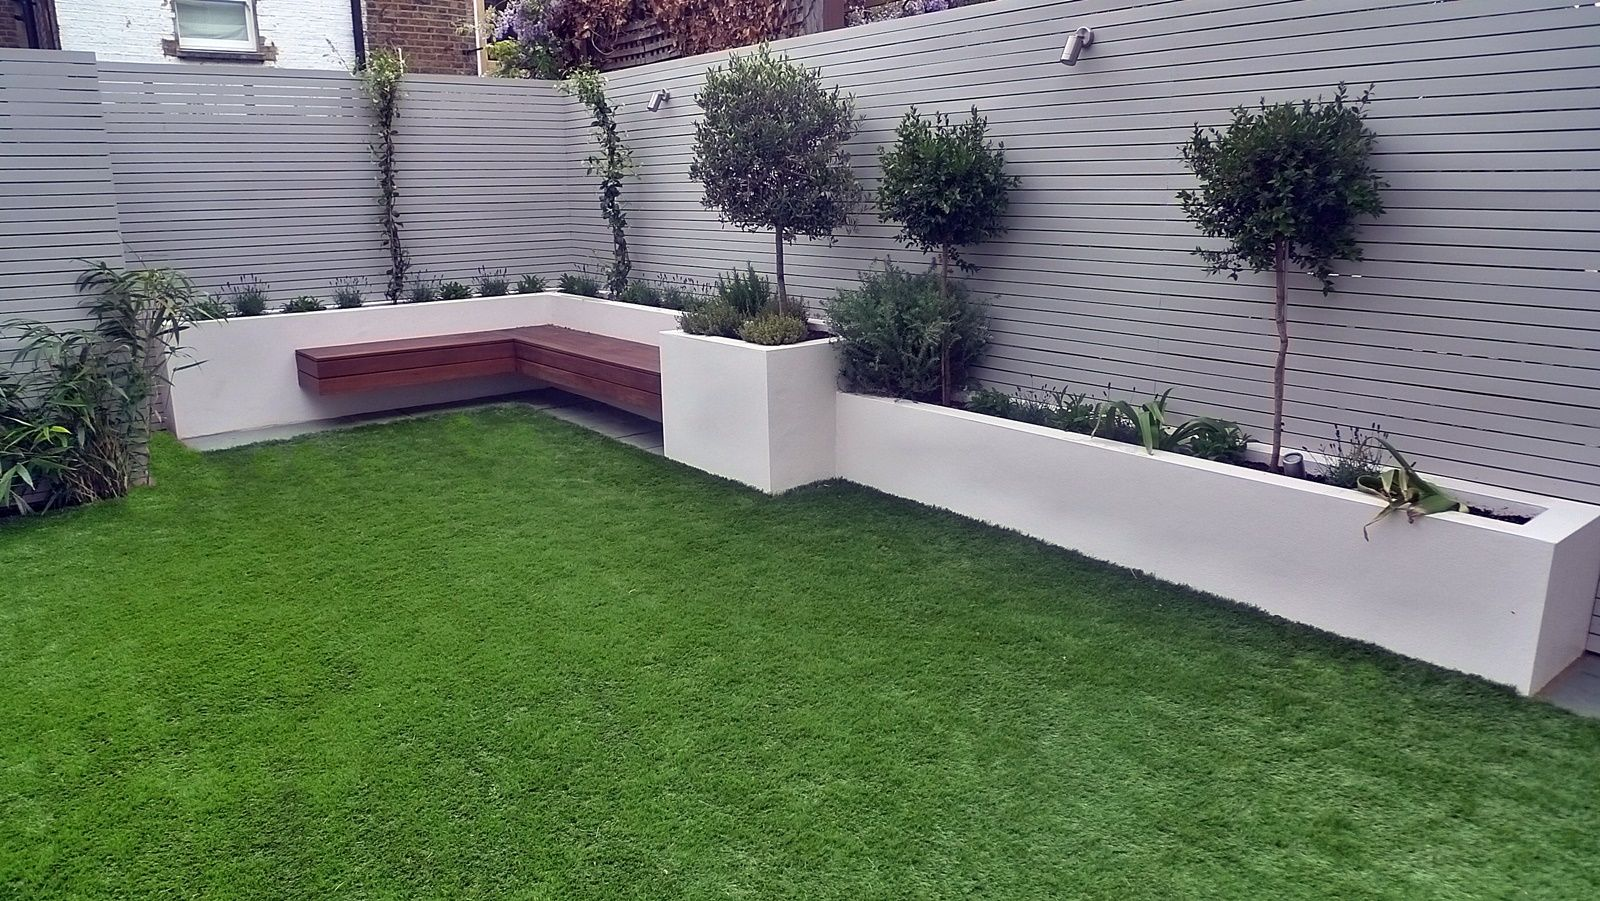 Modern Garden Design Raised Beds Slatted Privacy Screen